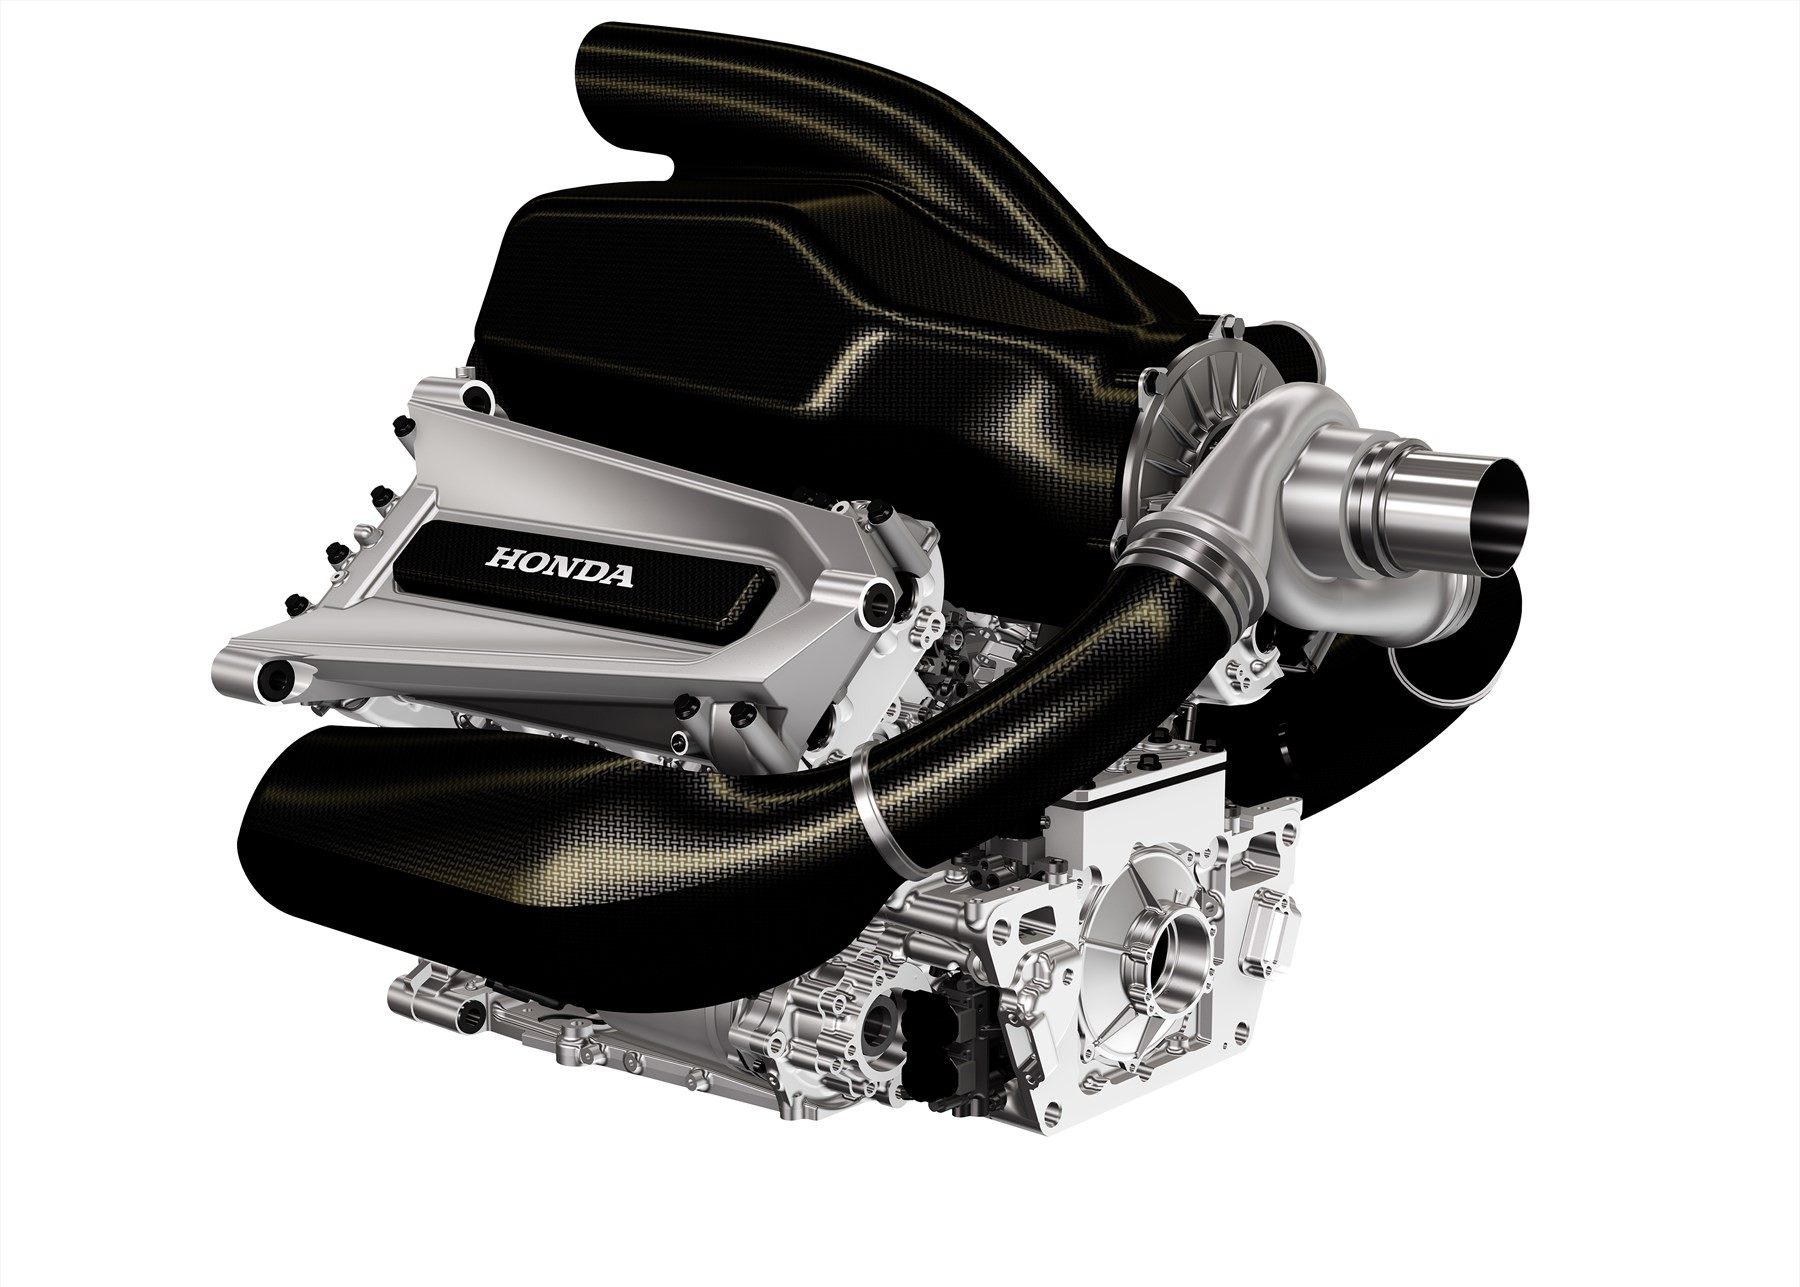 Moteur F1 Power Unit 2015 - Honda